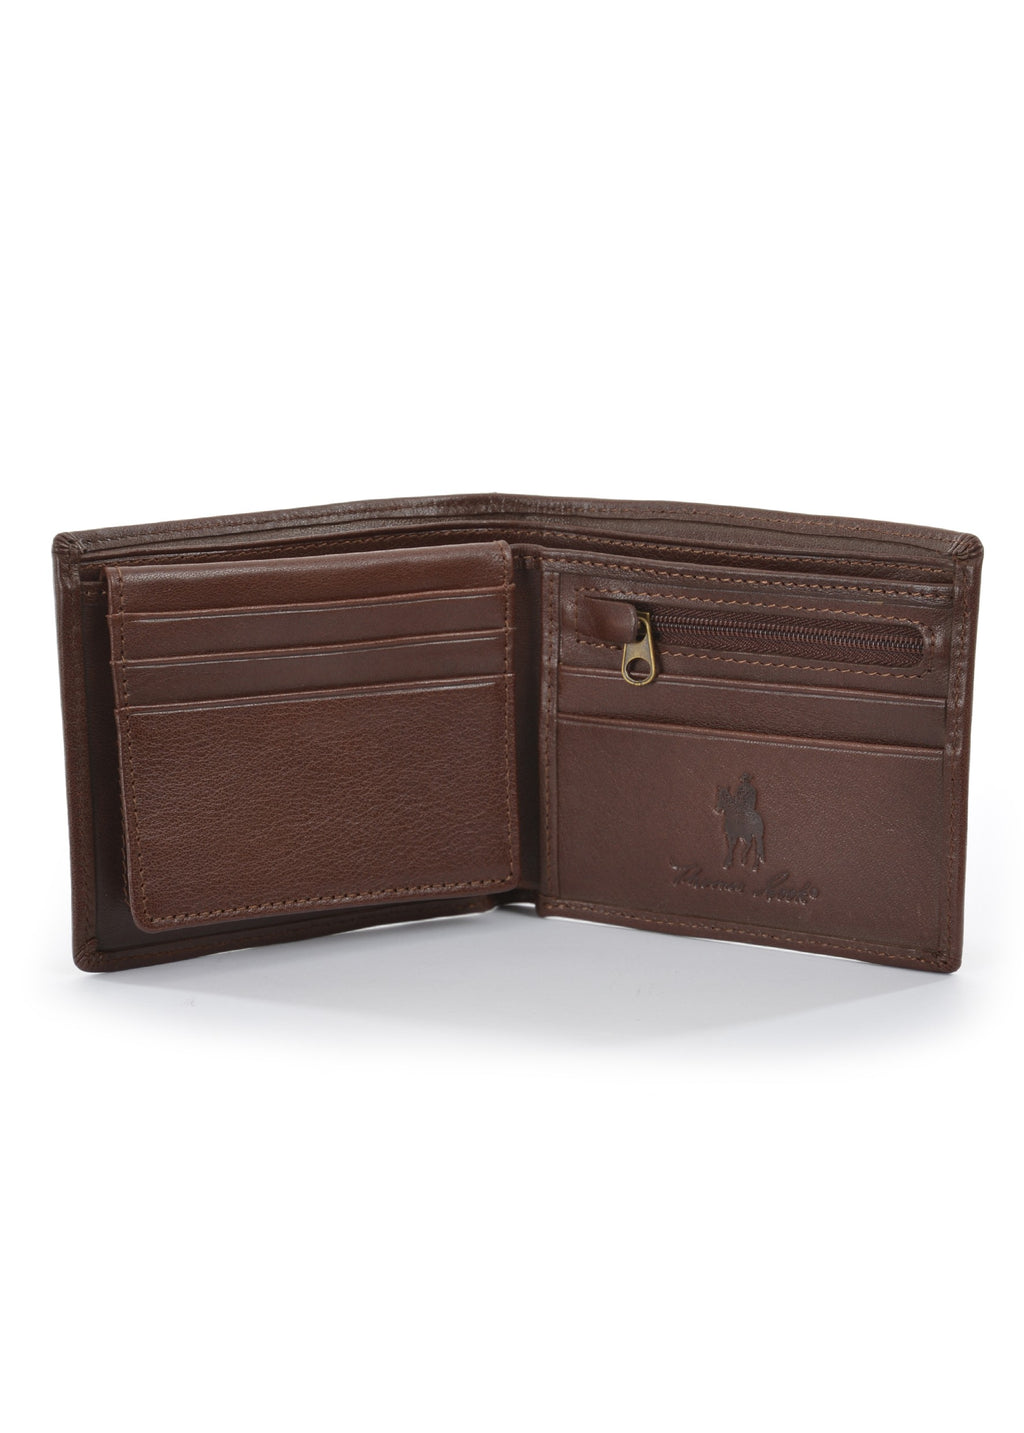 Thomas Cook | Lifestyle | Wallet | Leather Edged | Light Brown